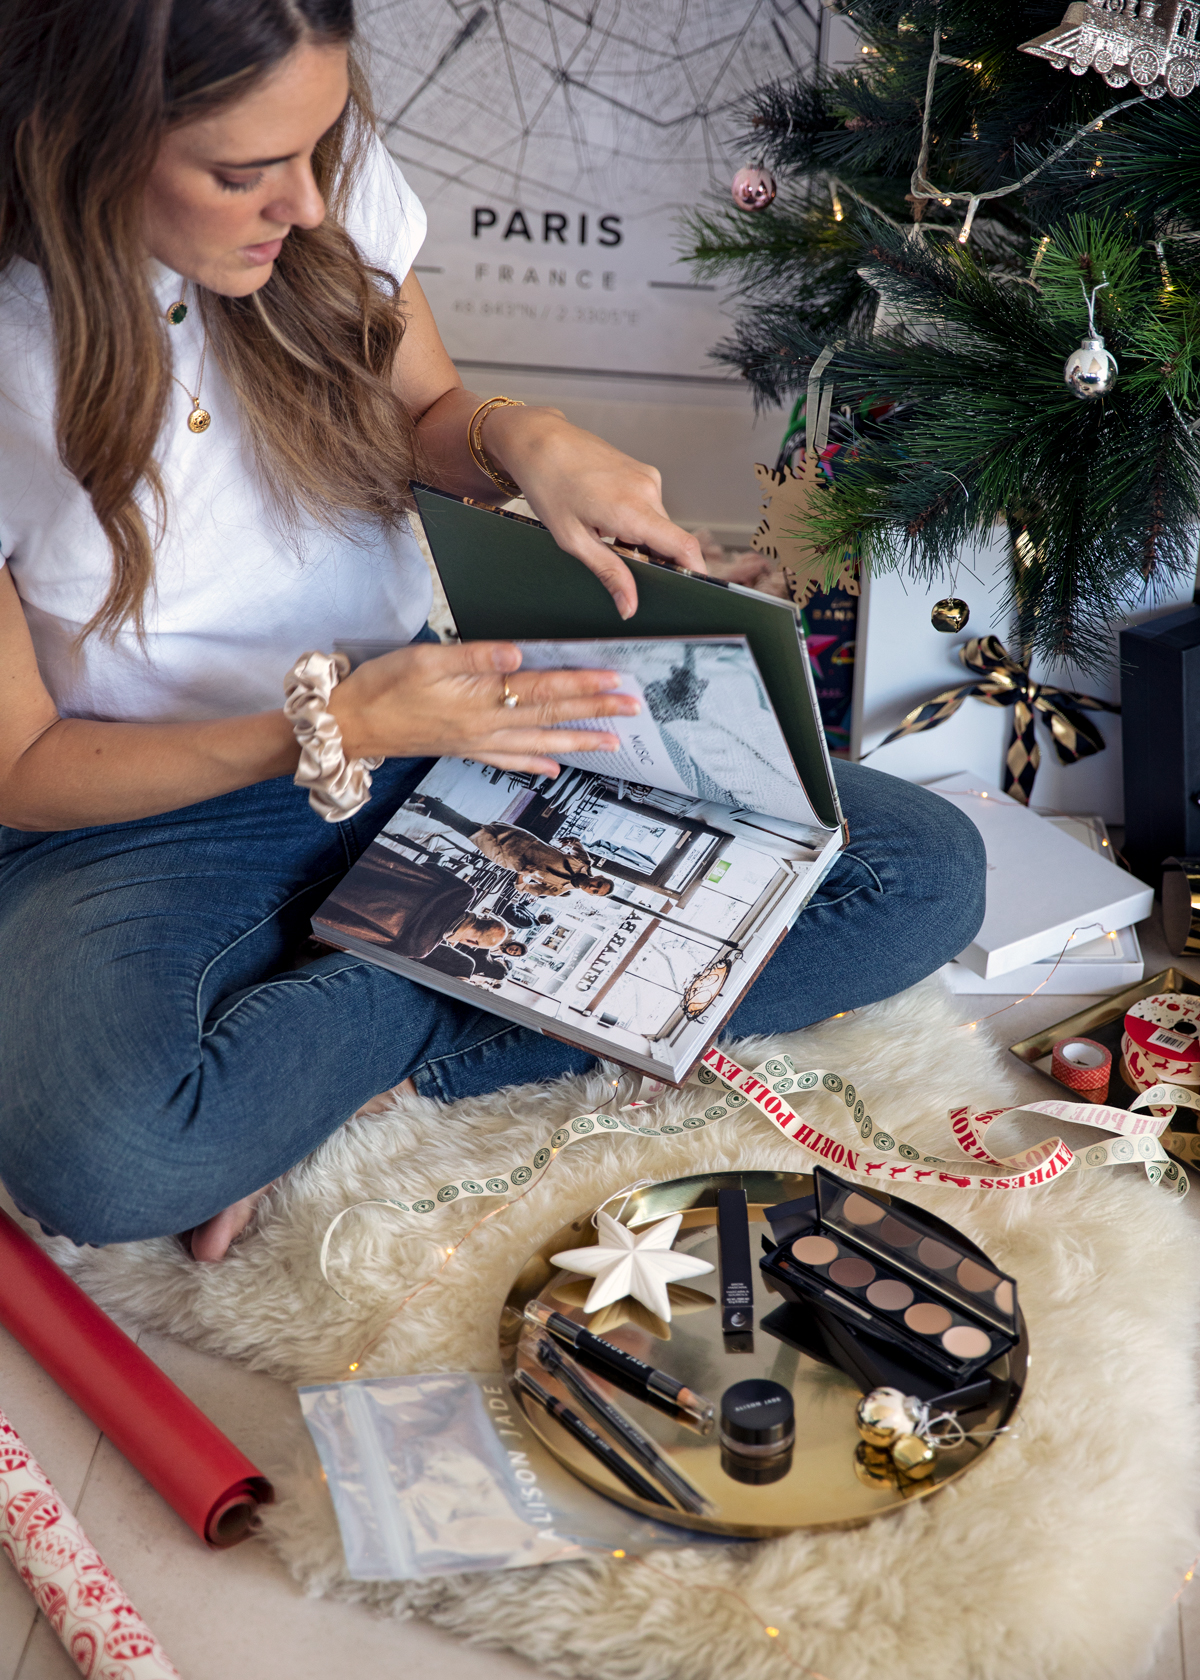 2018 Christmas gift guide Inspiring Wit blog featuring Perth gift ideas Love Italy cookbook by Guy Grossi and Alison Jade beauty cosmetics gift packs